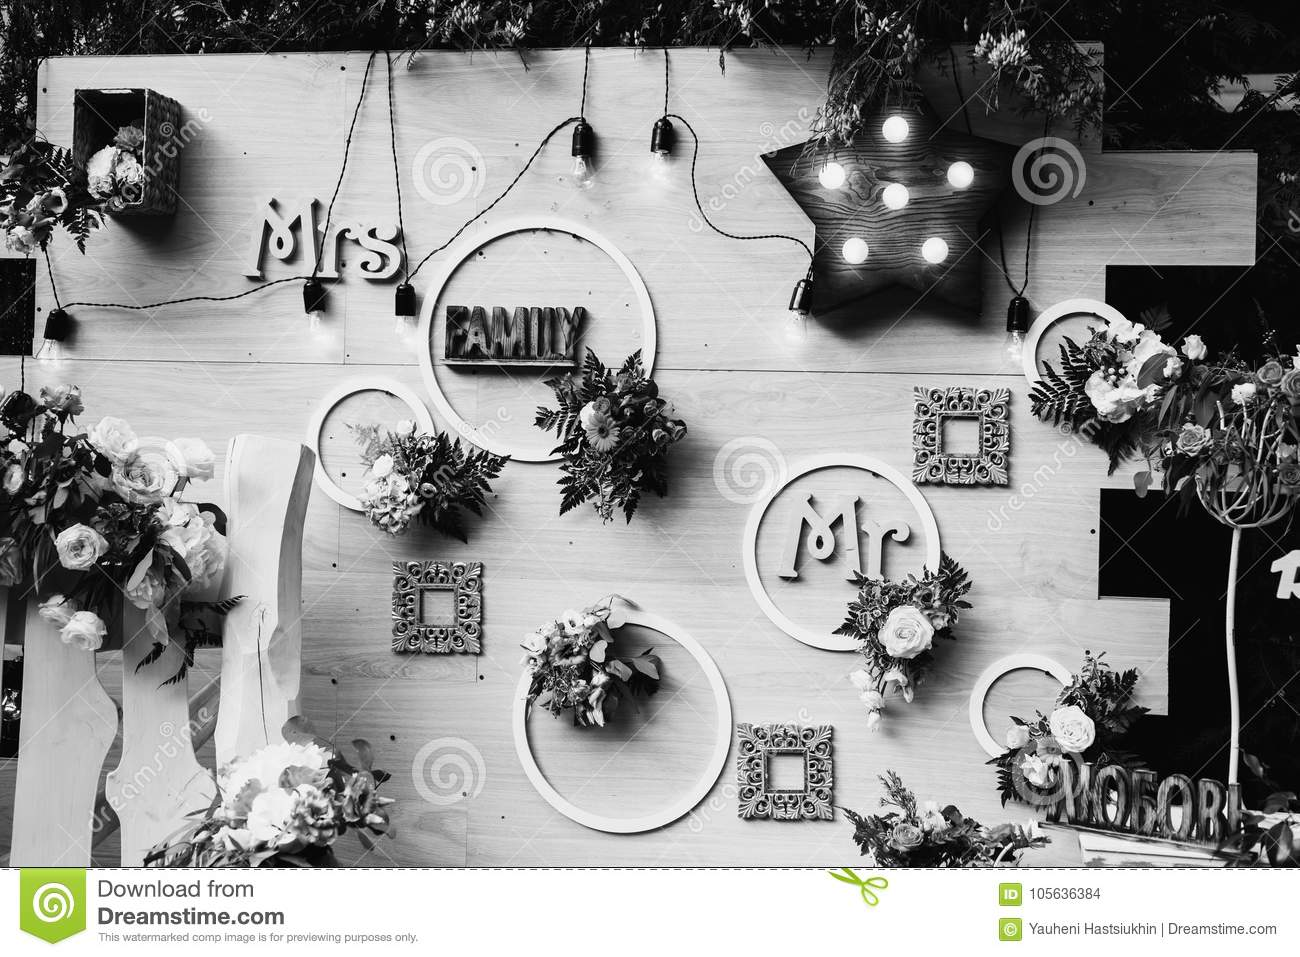 Art black and white photography wedding decorations